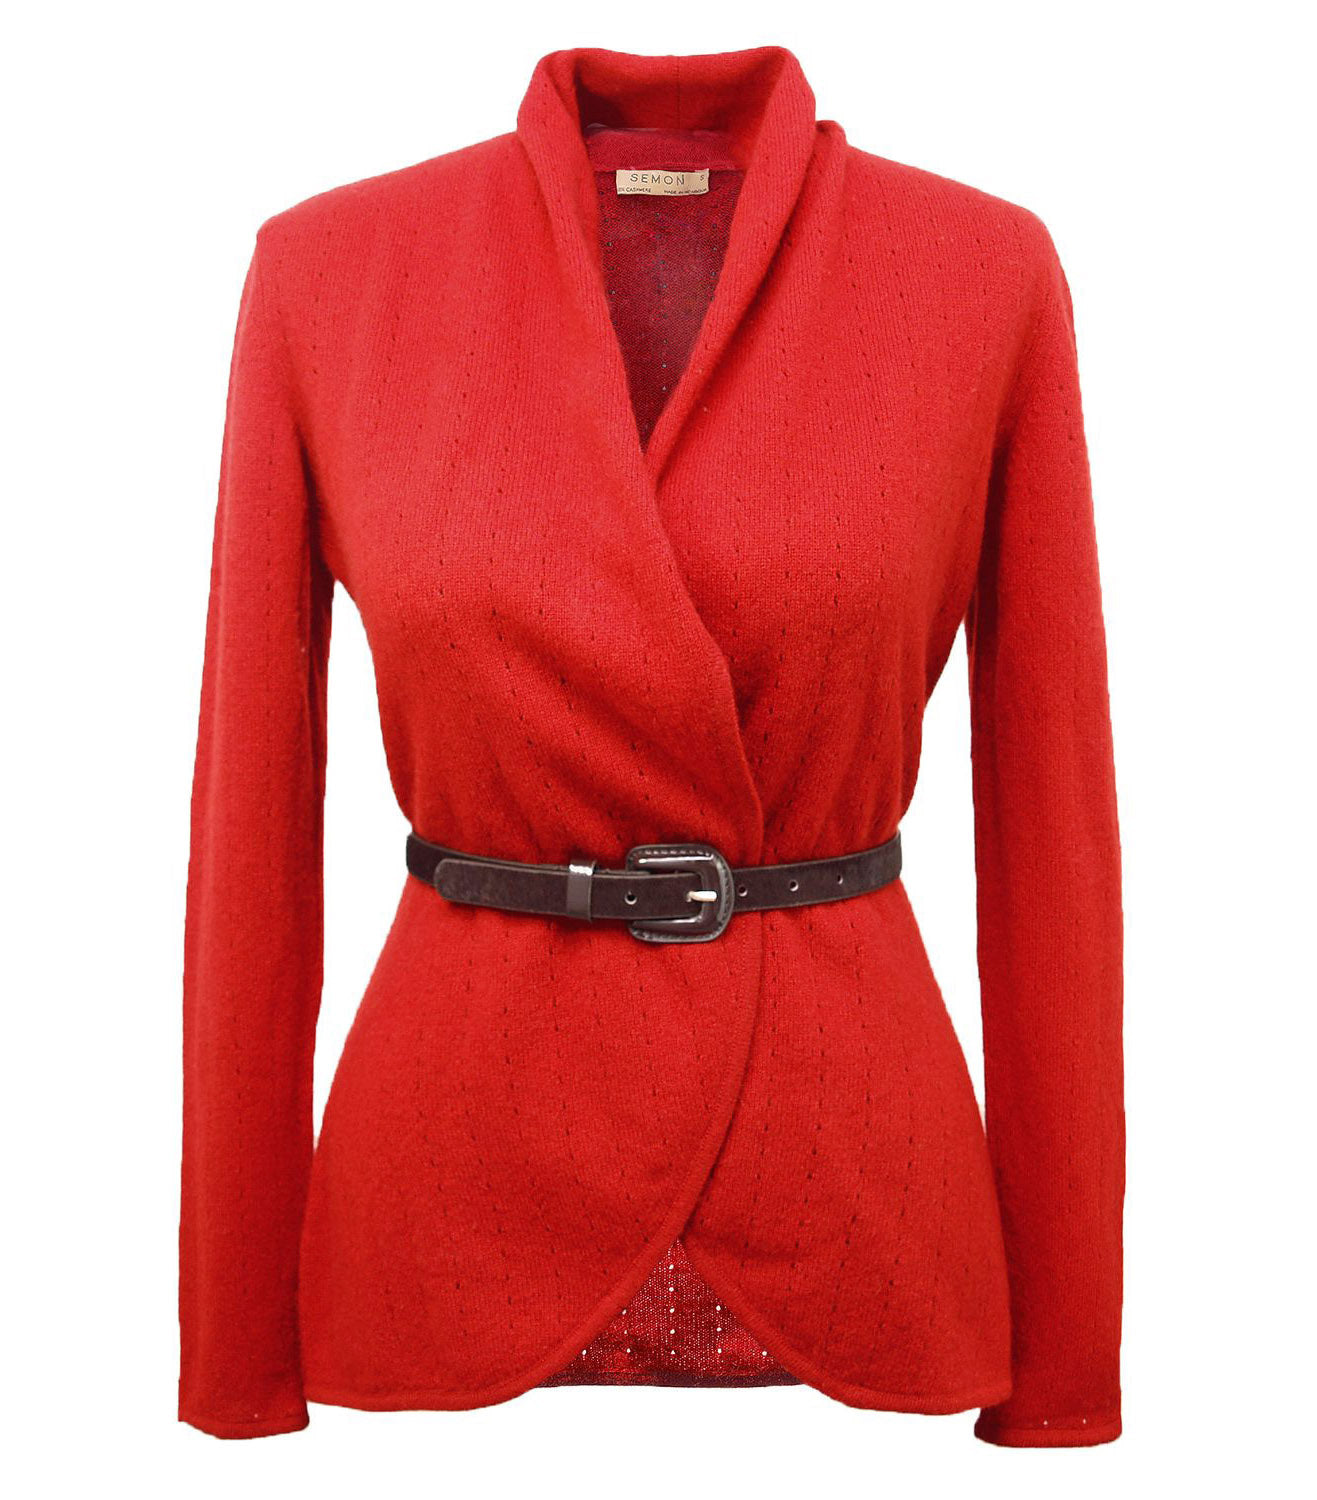 Bright red women's luxury Cashmere cardigan jacket, ladies light weight summer cardigan, open front tailored jacket, fitted shawl neck collared elegant cardigan sale, open V-neck sweater knit London UK | SEMON Cashmere